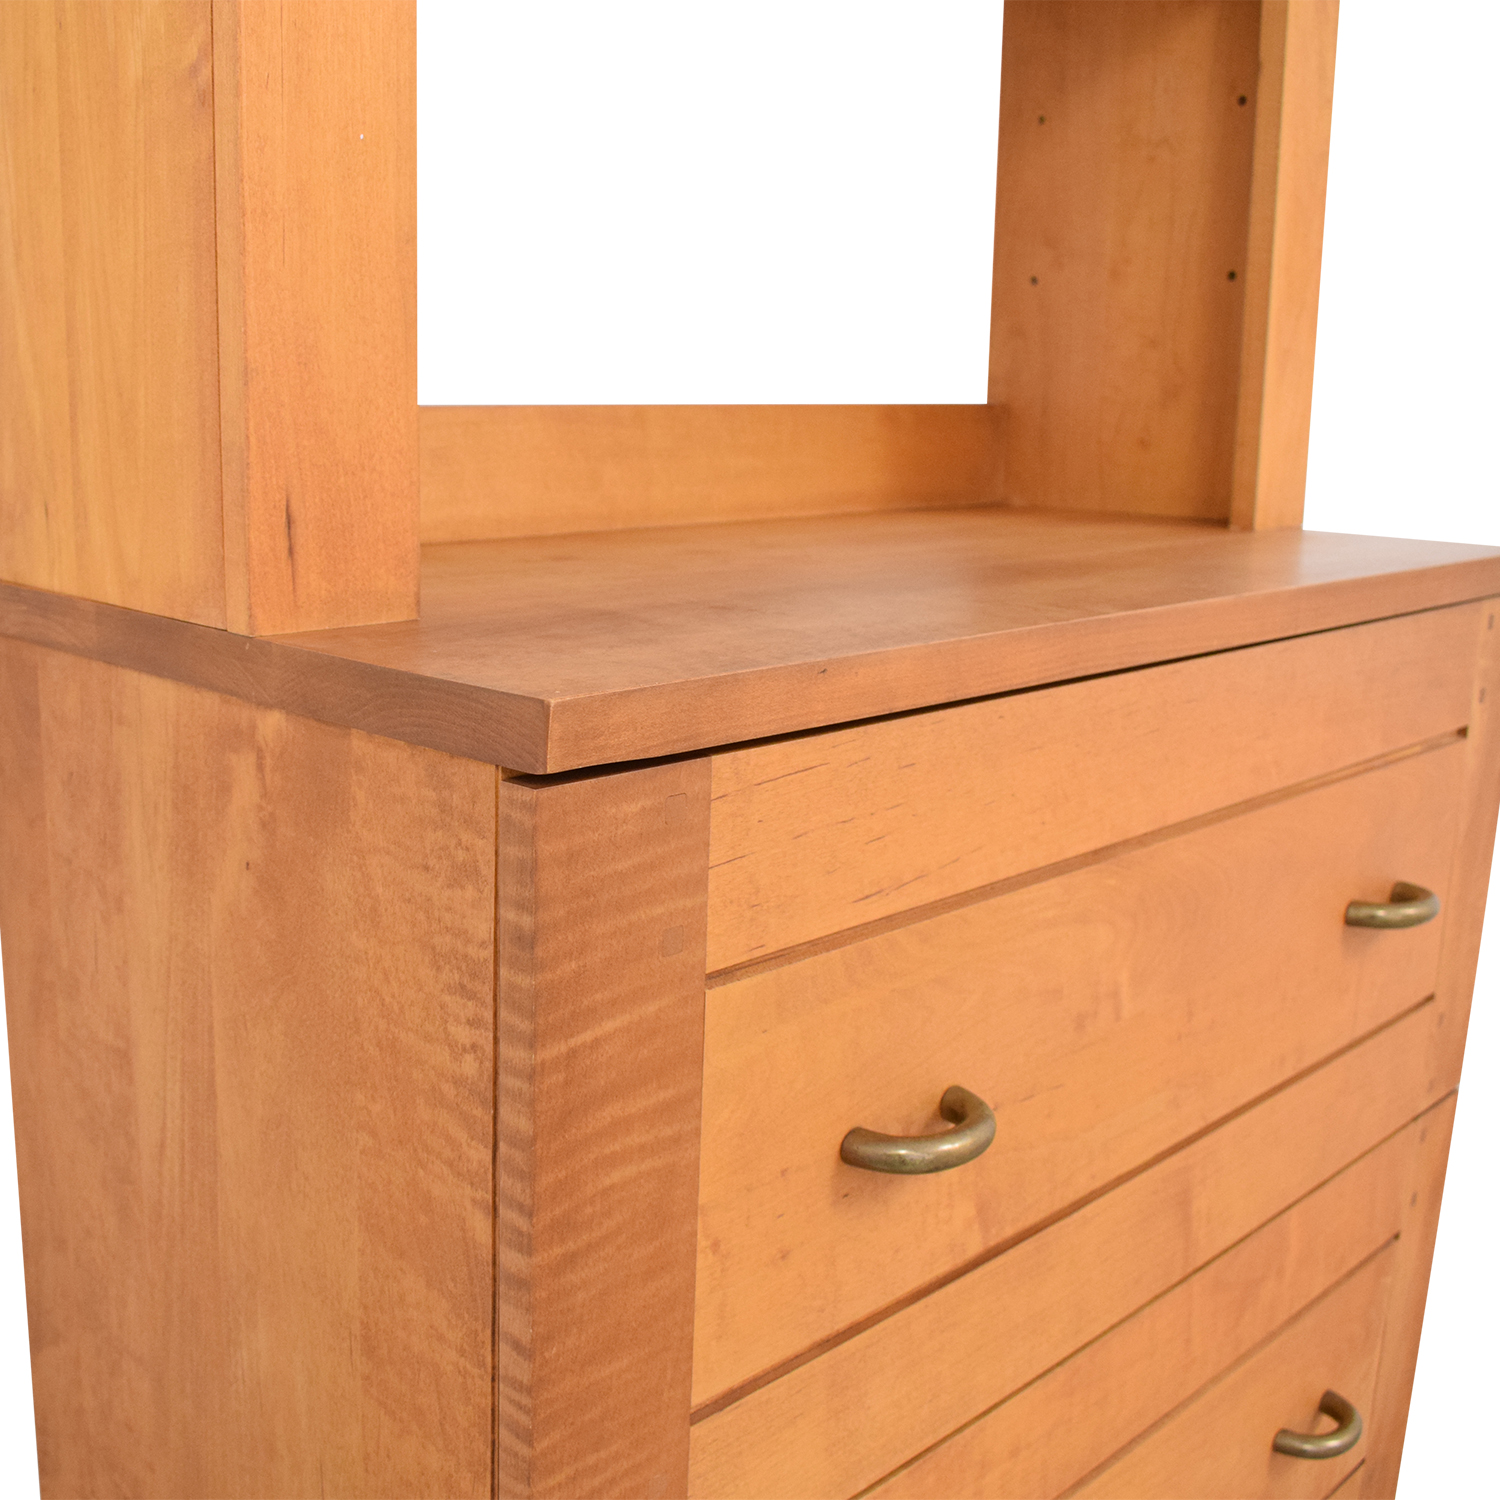 Asher Benjamin Studio Asher Benjamin Studio Storage Cabinet for sale